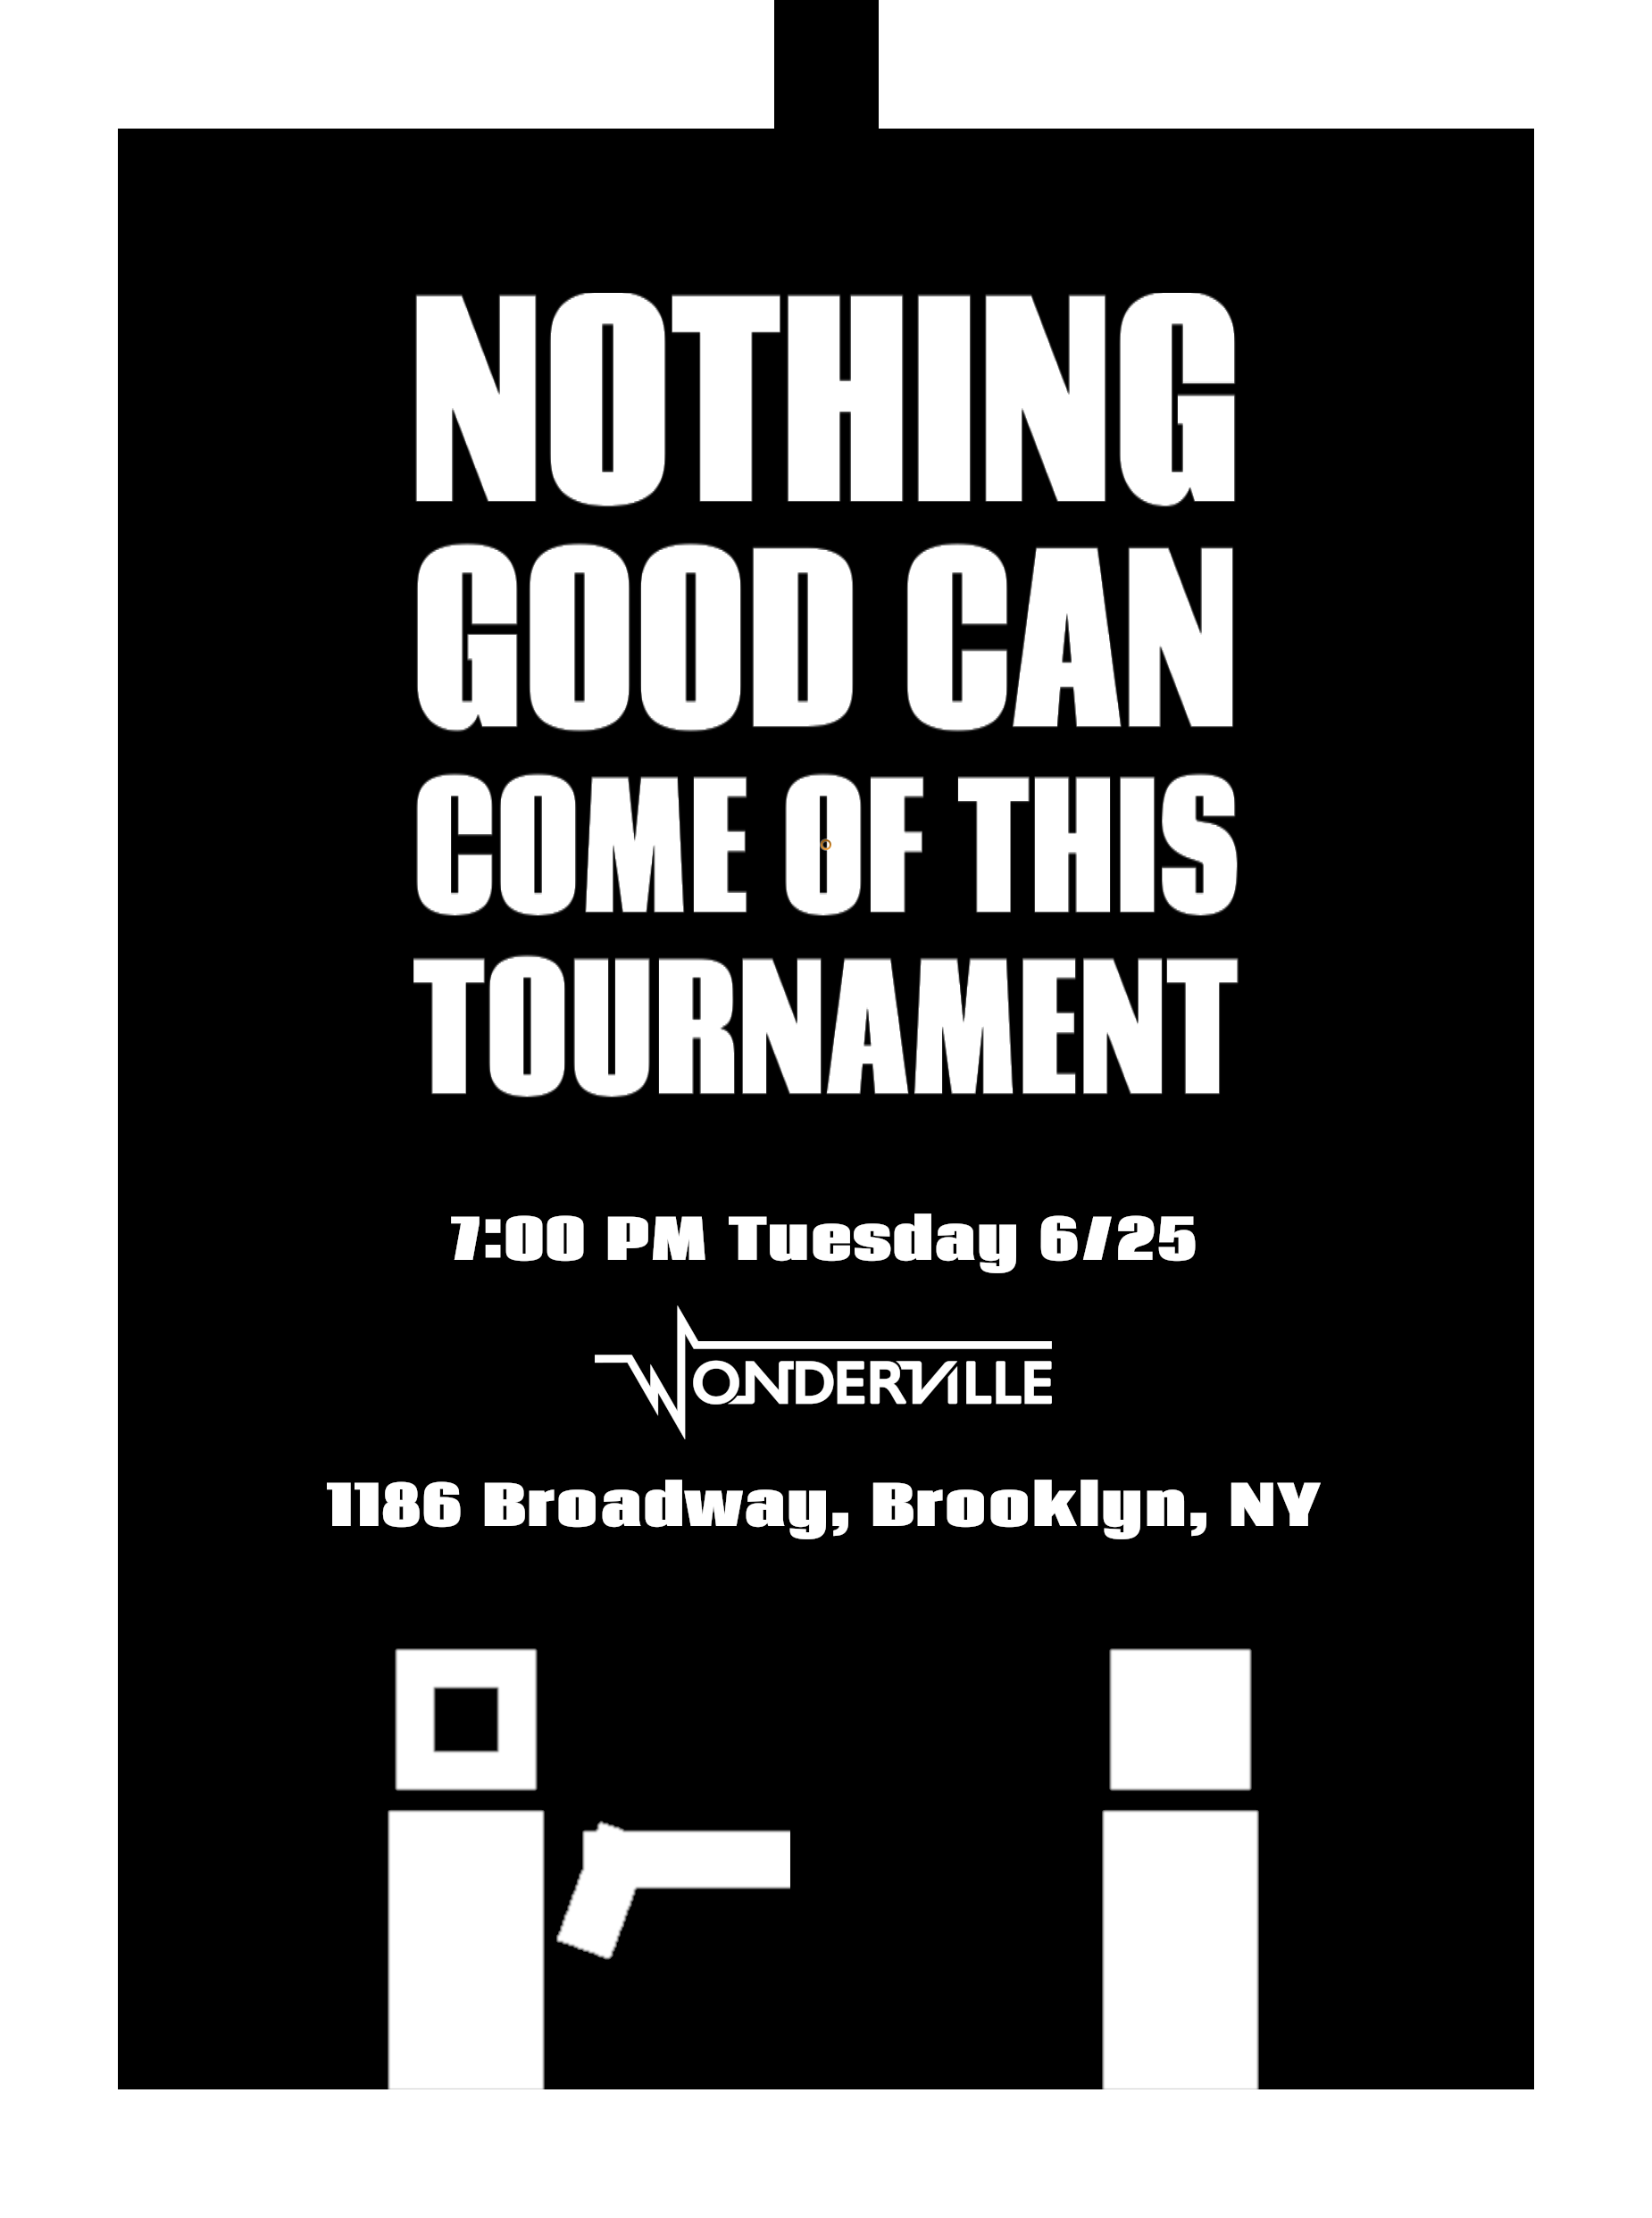 RSVP:  https://withfriends.co/Event/1959169/Nothing_Good_Can_Come_Of_This_Tournament